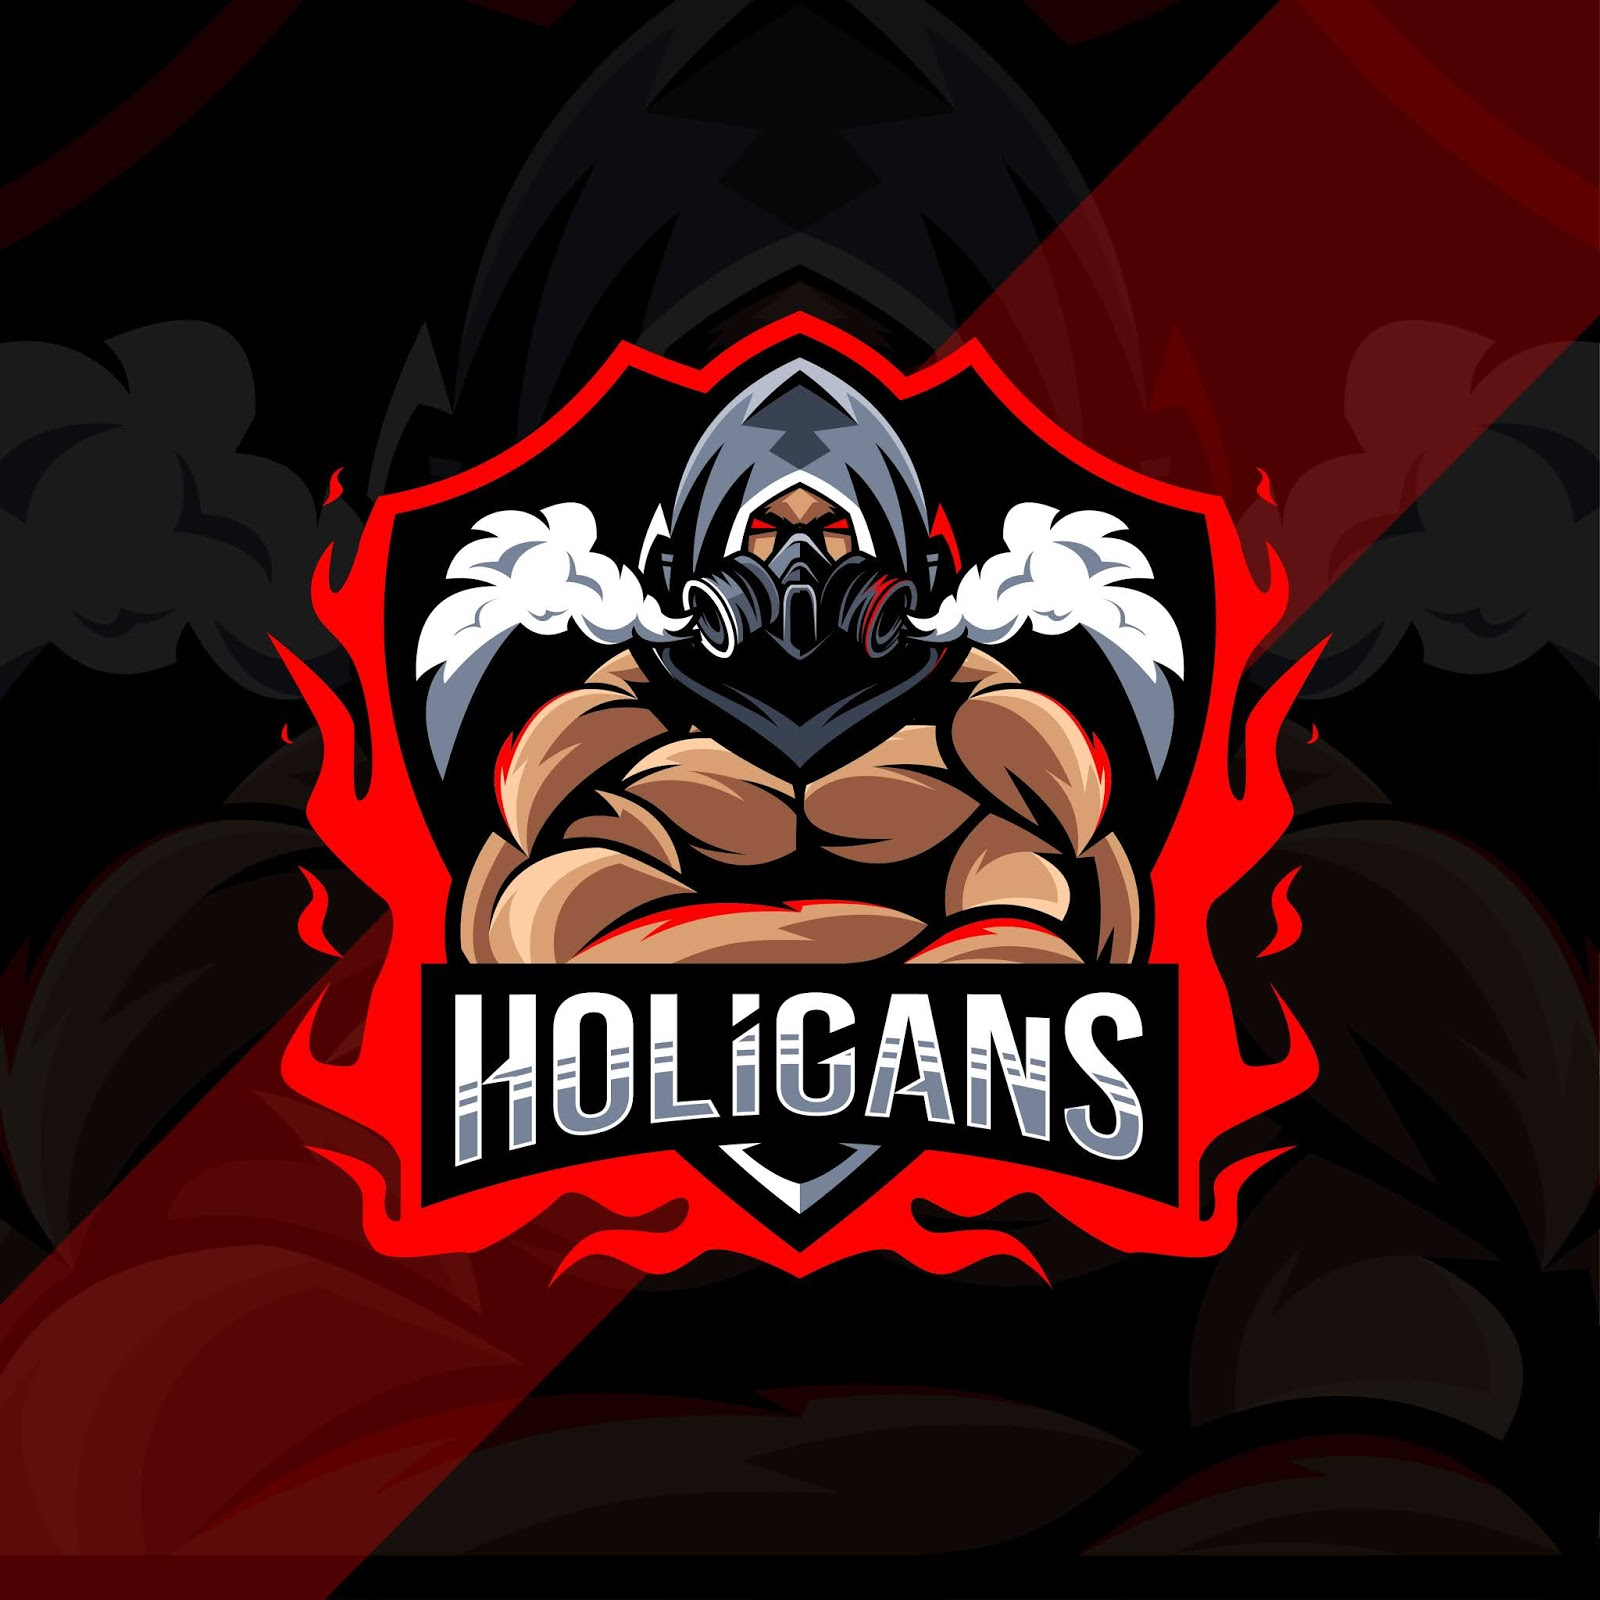 Holigans Mascot Logo Esport Design Free Download Vector CDR, AI, EPS and PNG Formats